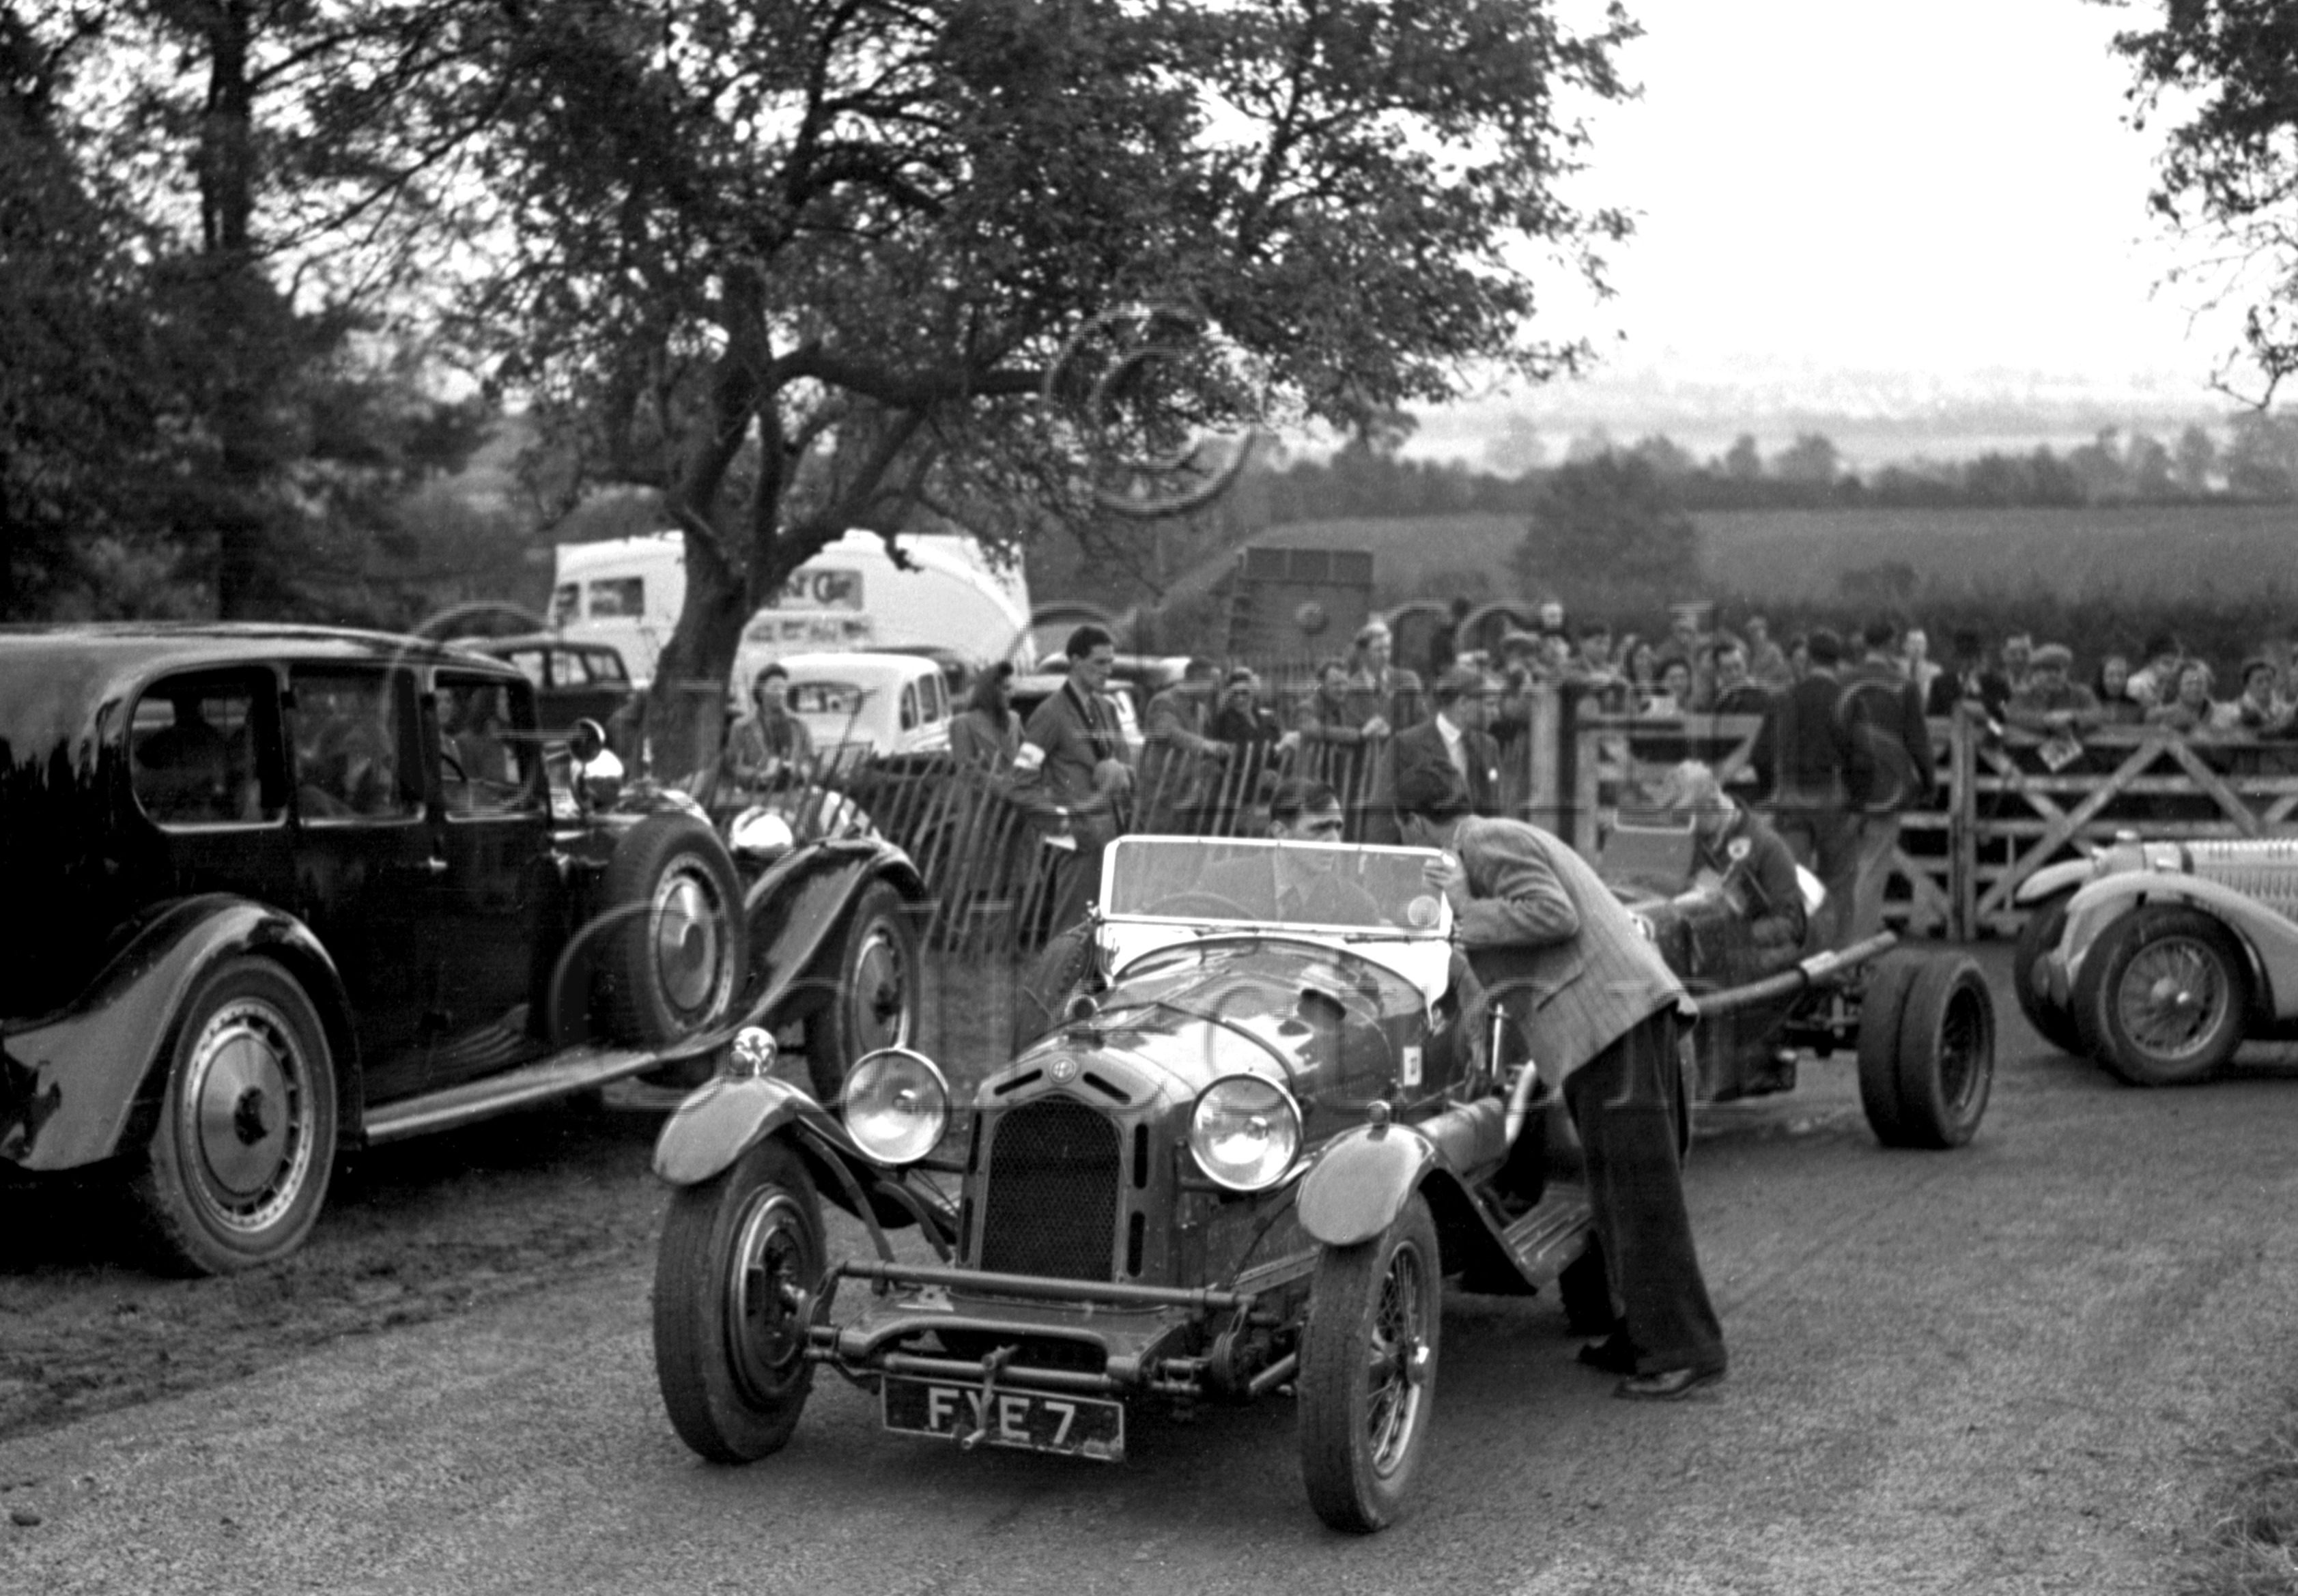 02-654–J-James–Alfa-Romeo–Prescott–22-09-1946.jpg - The Guy Griffiths Collection